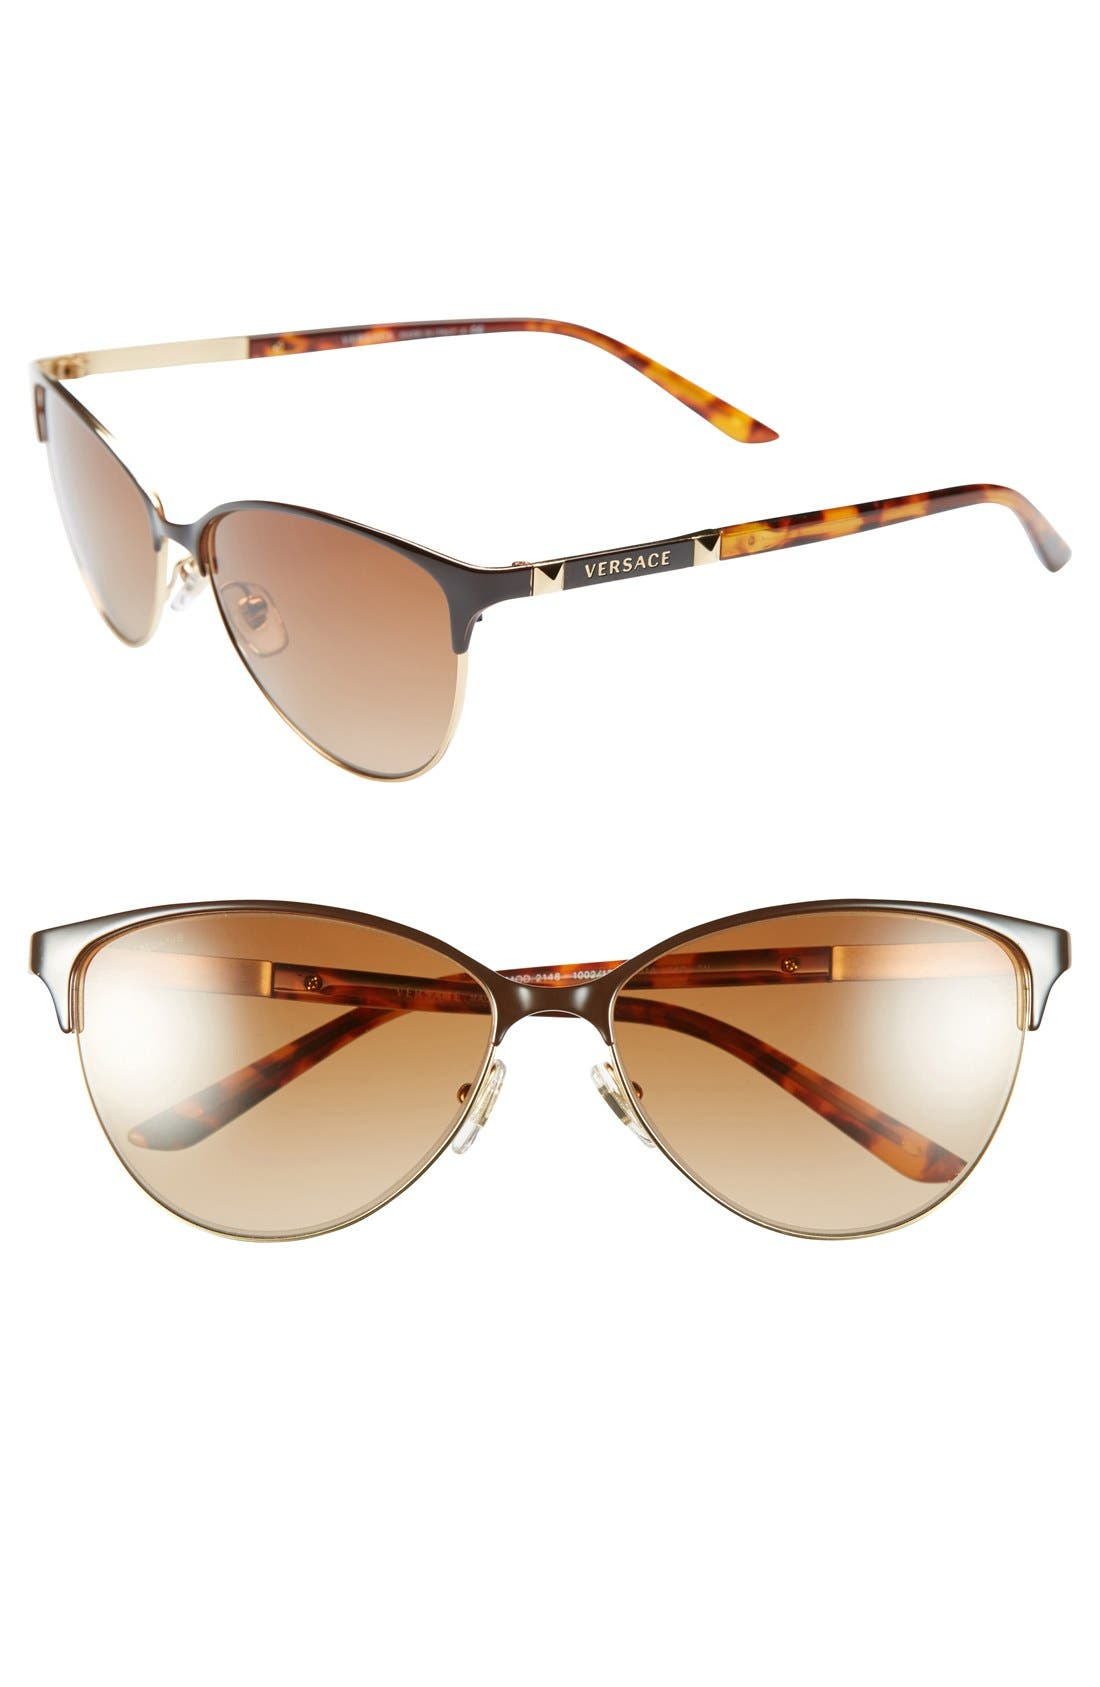 Alternate Image 1 Selected - Versace 57mm Cat Eye Sunglasses